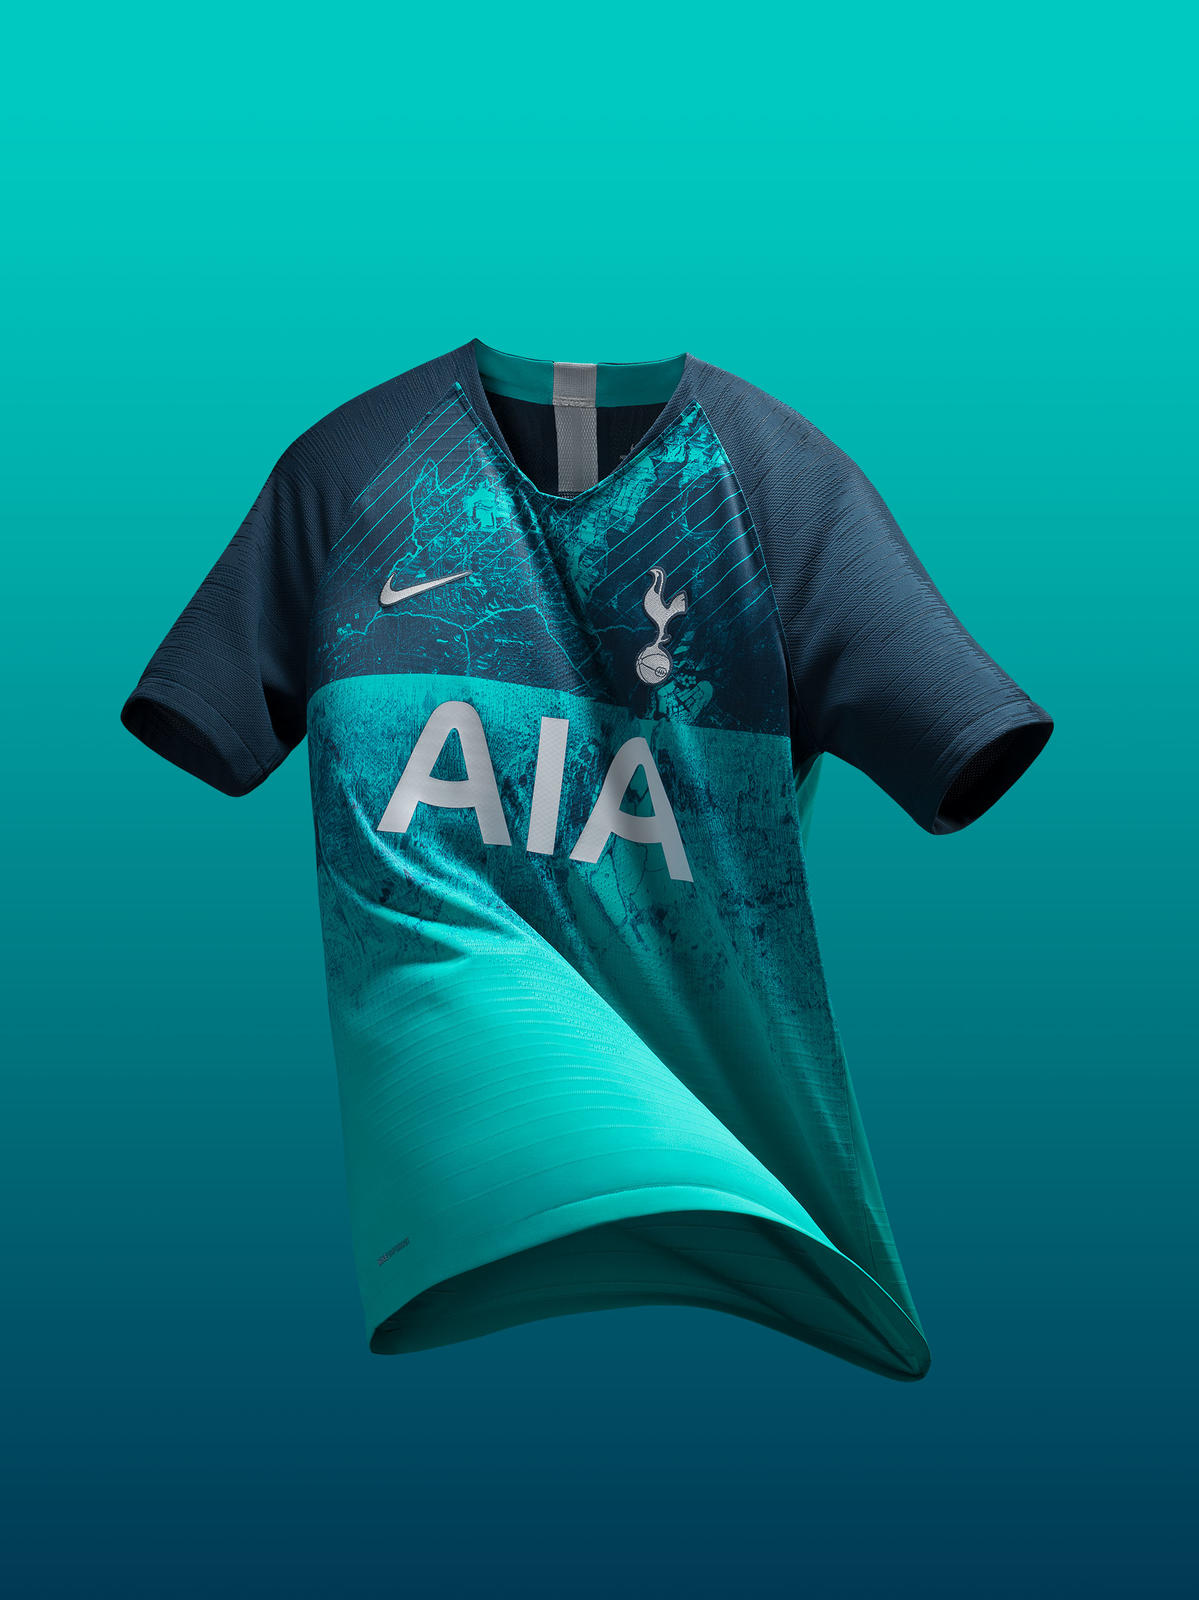 d4de3e39e Tottenham Hotspur Goes Full N17 With Its 2018-19 Third Kit 0